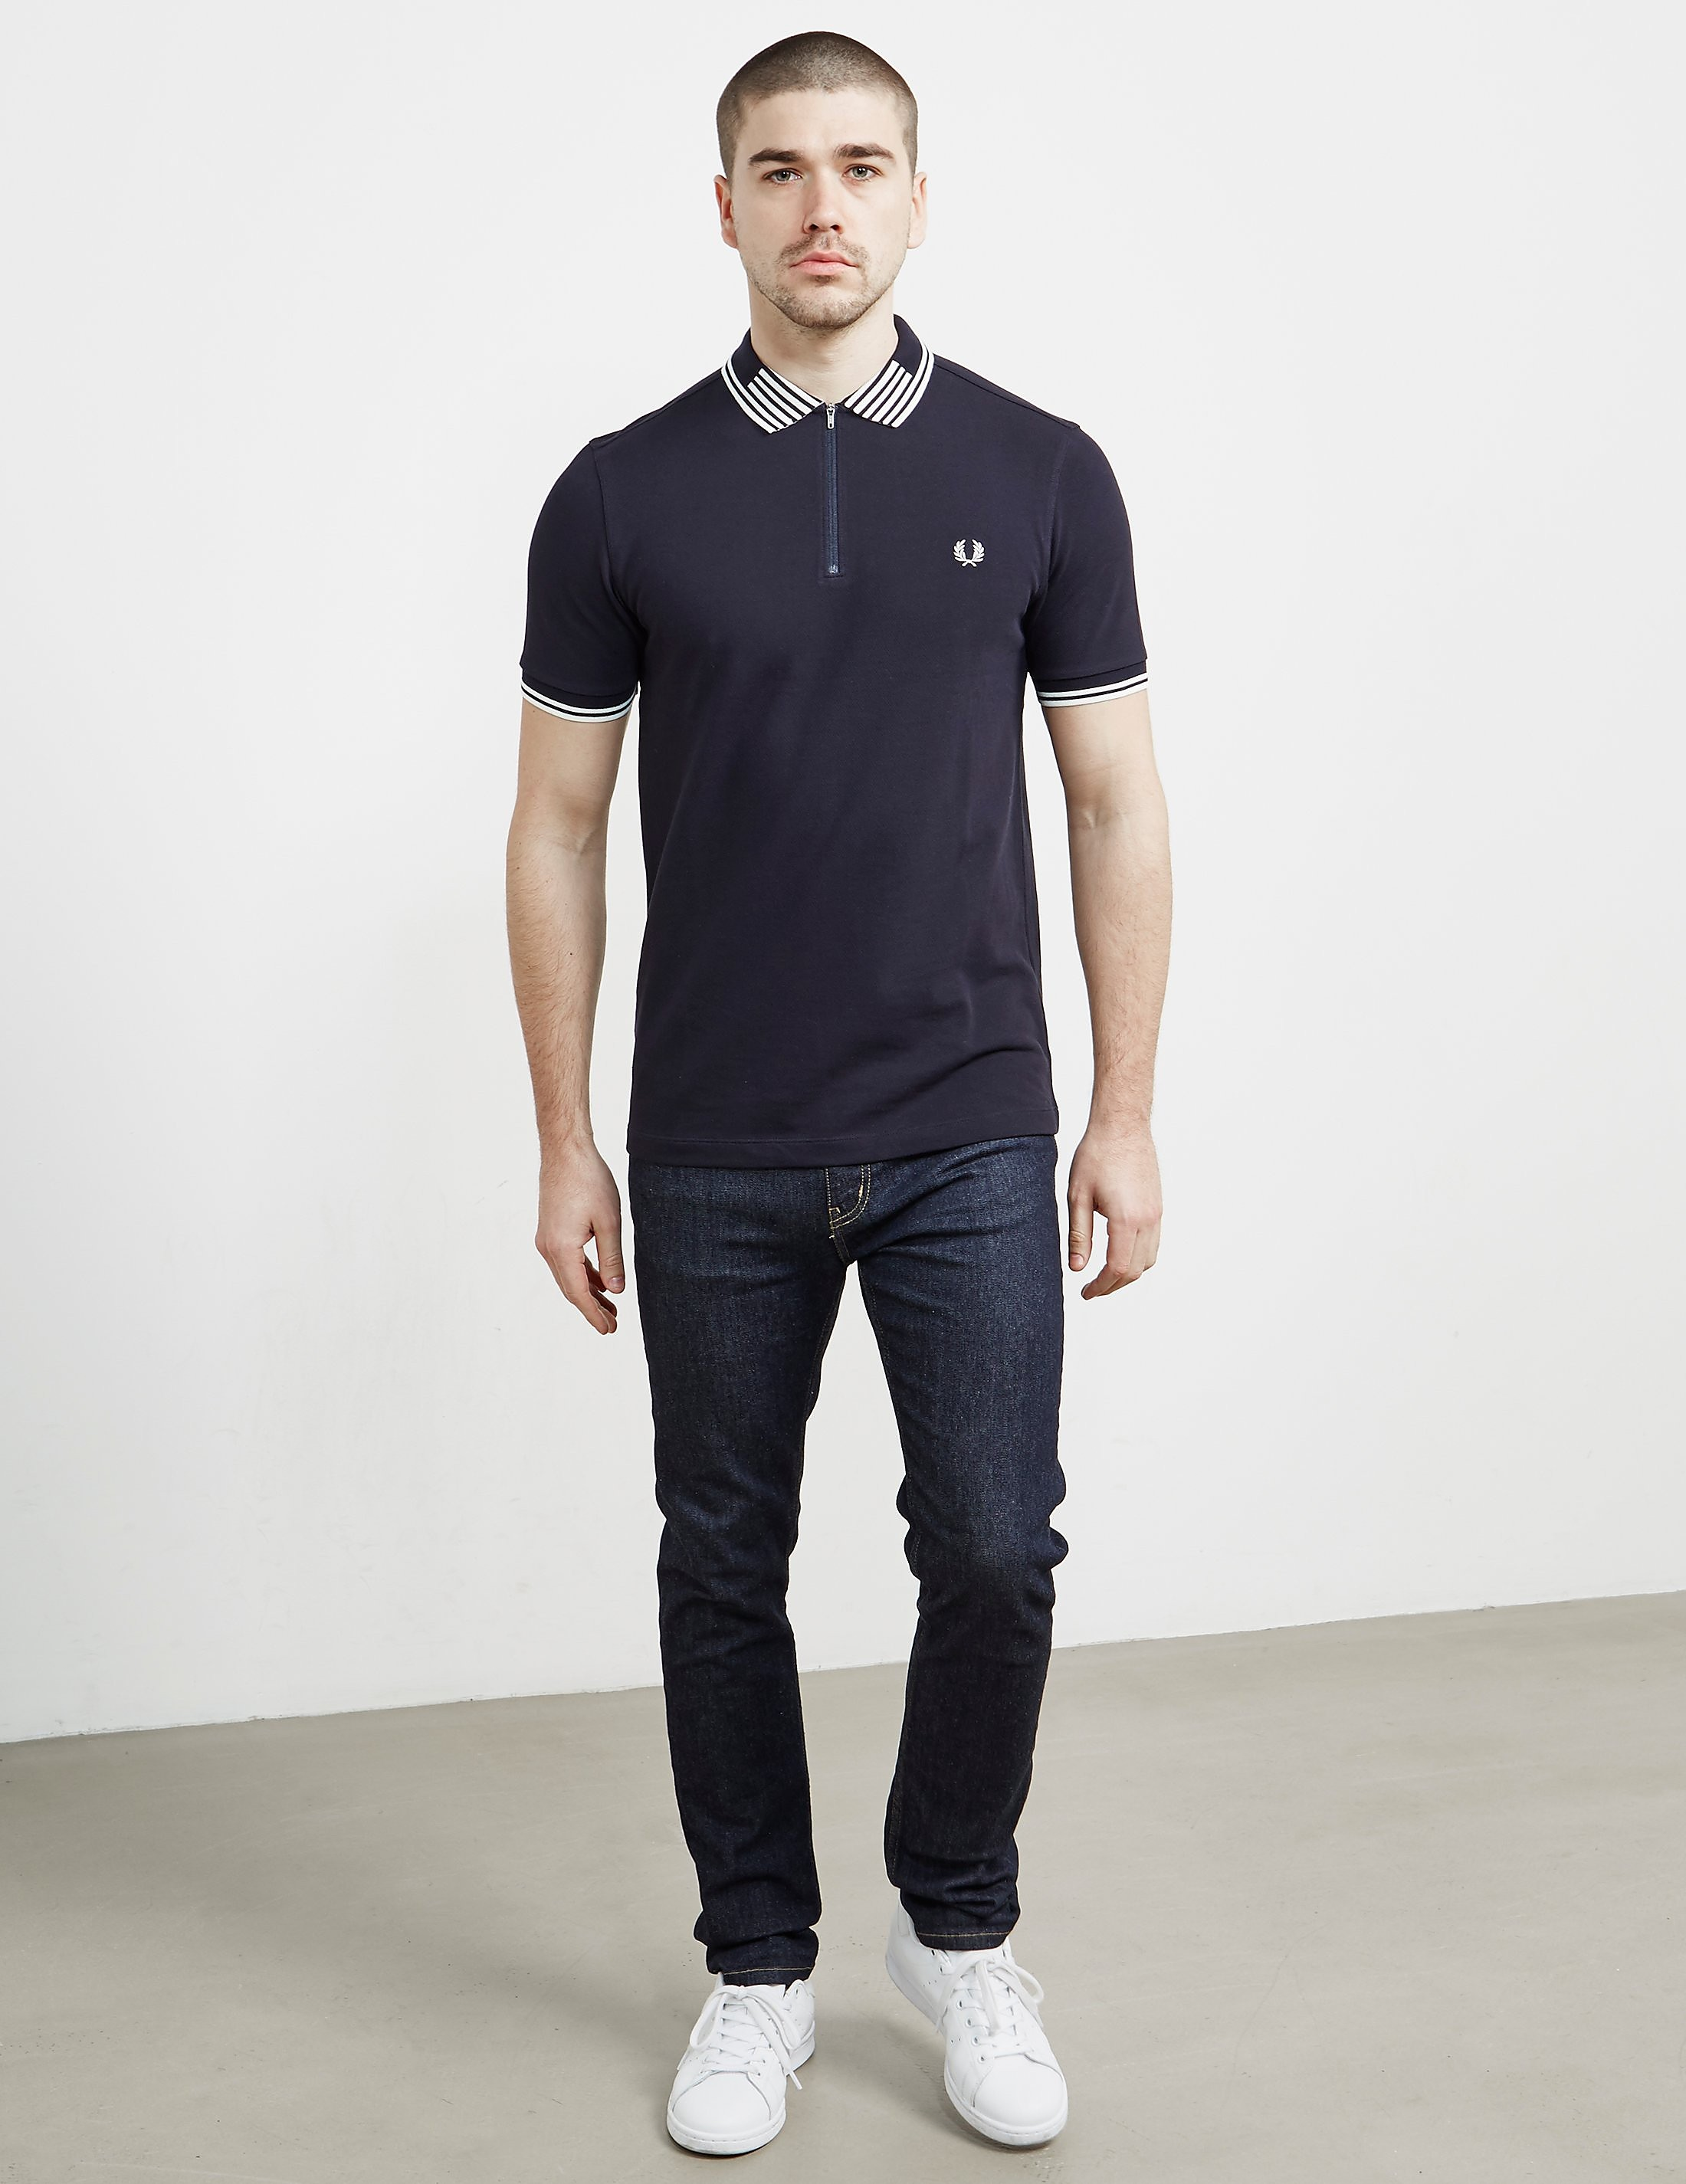 cheap fred perry polo shirts sale items at discount uk. Black Bedroom Furniture Sets. Home Design Ideas